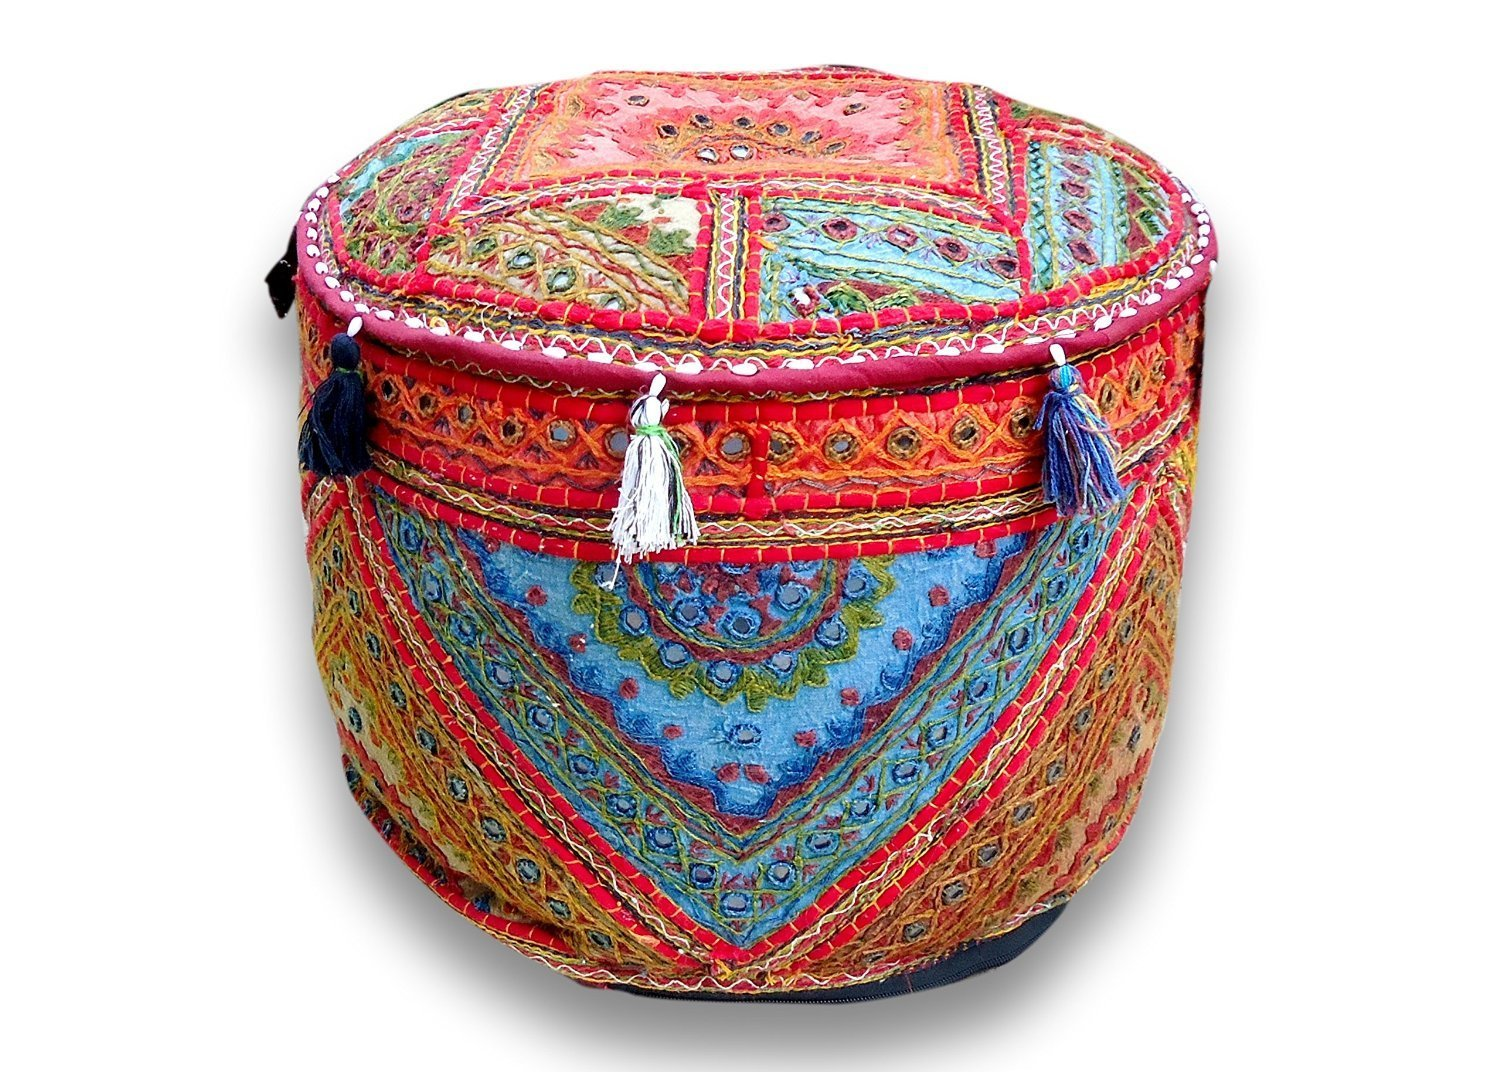 Indian Handmade Ottoman Pouf ,Vintage Patchwork Ottoman, Home Living Room Decorative Foot Stool Cover,Embroidered Chair Cover 13x18 Inch. Traditional India pouf007